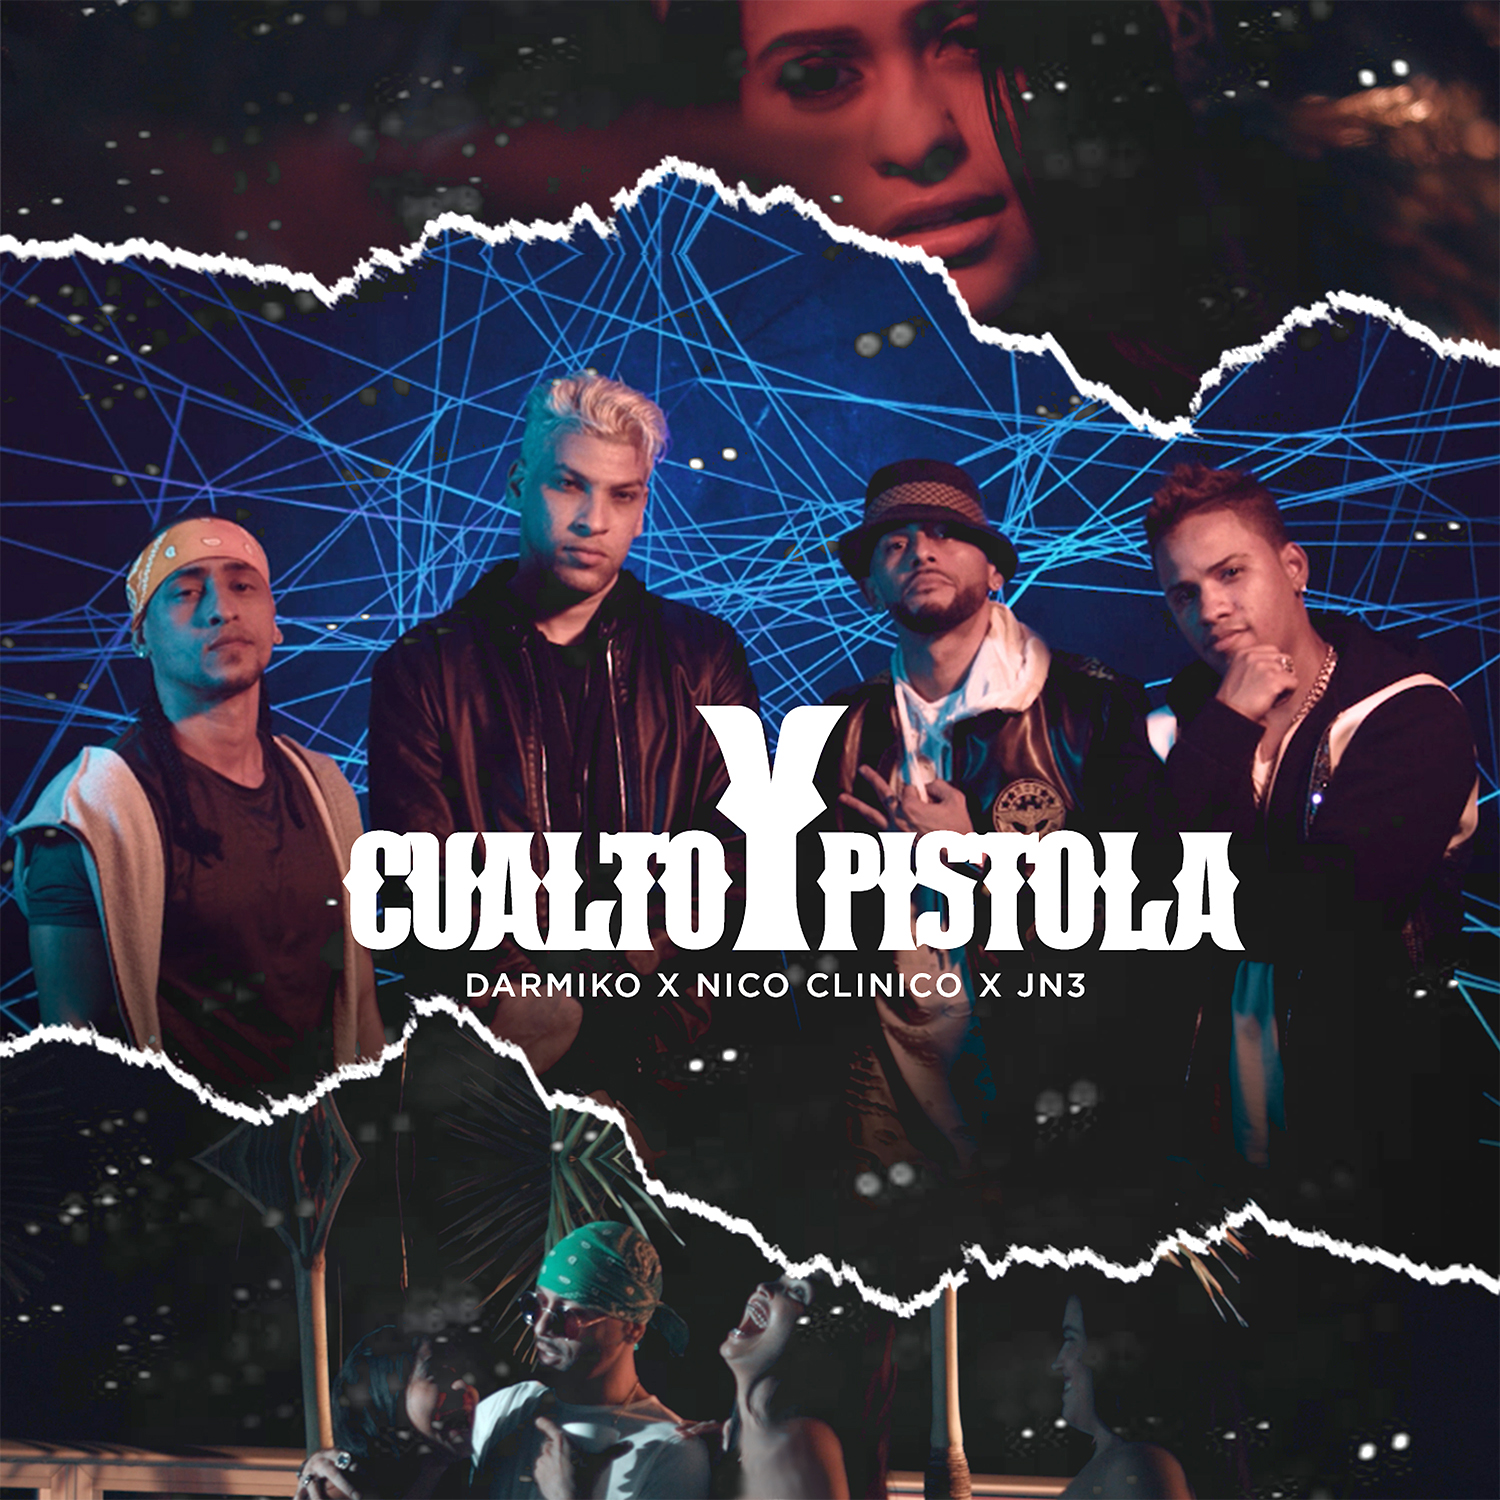 cualto y pistola final art real no logo.